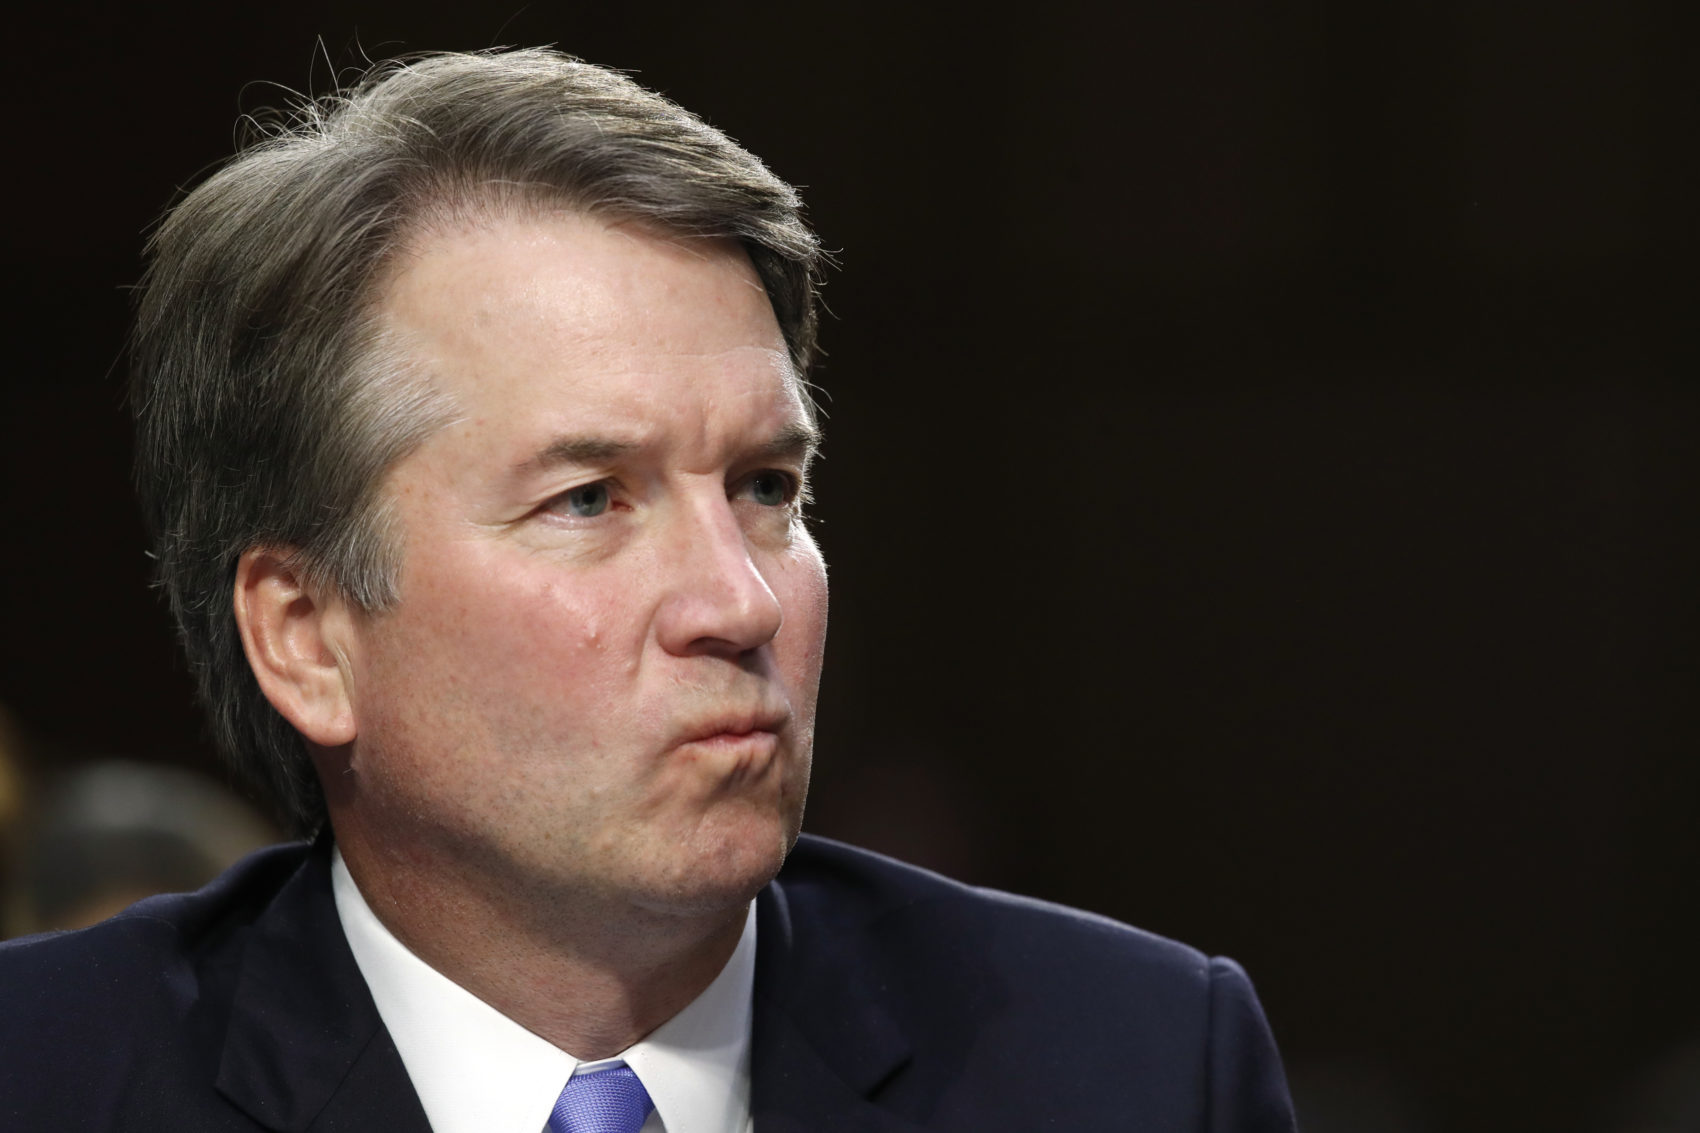 President Donald Trump's Supreme Court nominee, Brett Kavanaugh, listens to a question during the third round of questioning on the third day of his Senate Judiciary Committee confirmation hearing, Thursday, Sept. 6, 2018, on Capitol Hill in Washington, to replace retired Justice Anthony Kennedy. (Jacquelyn Martin/AP)